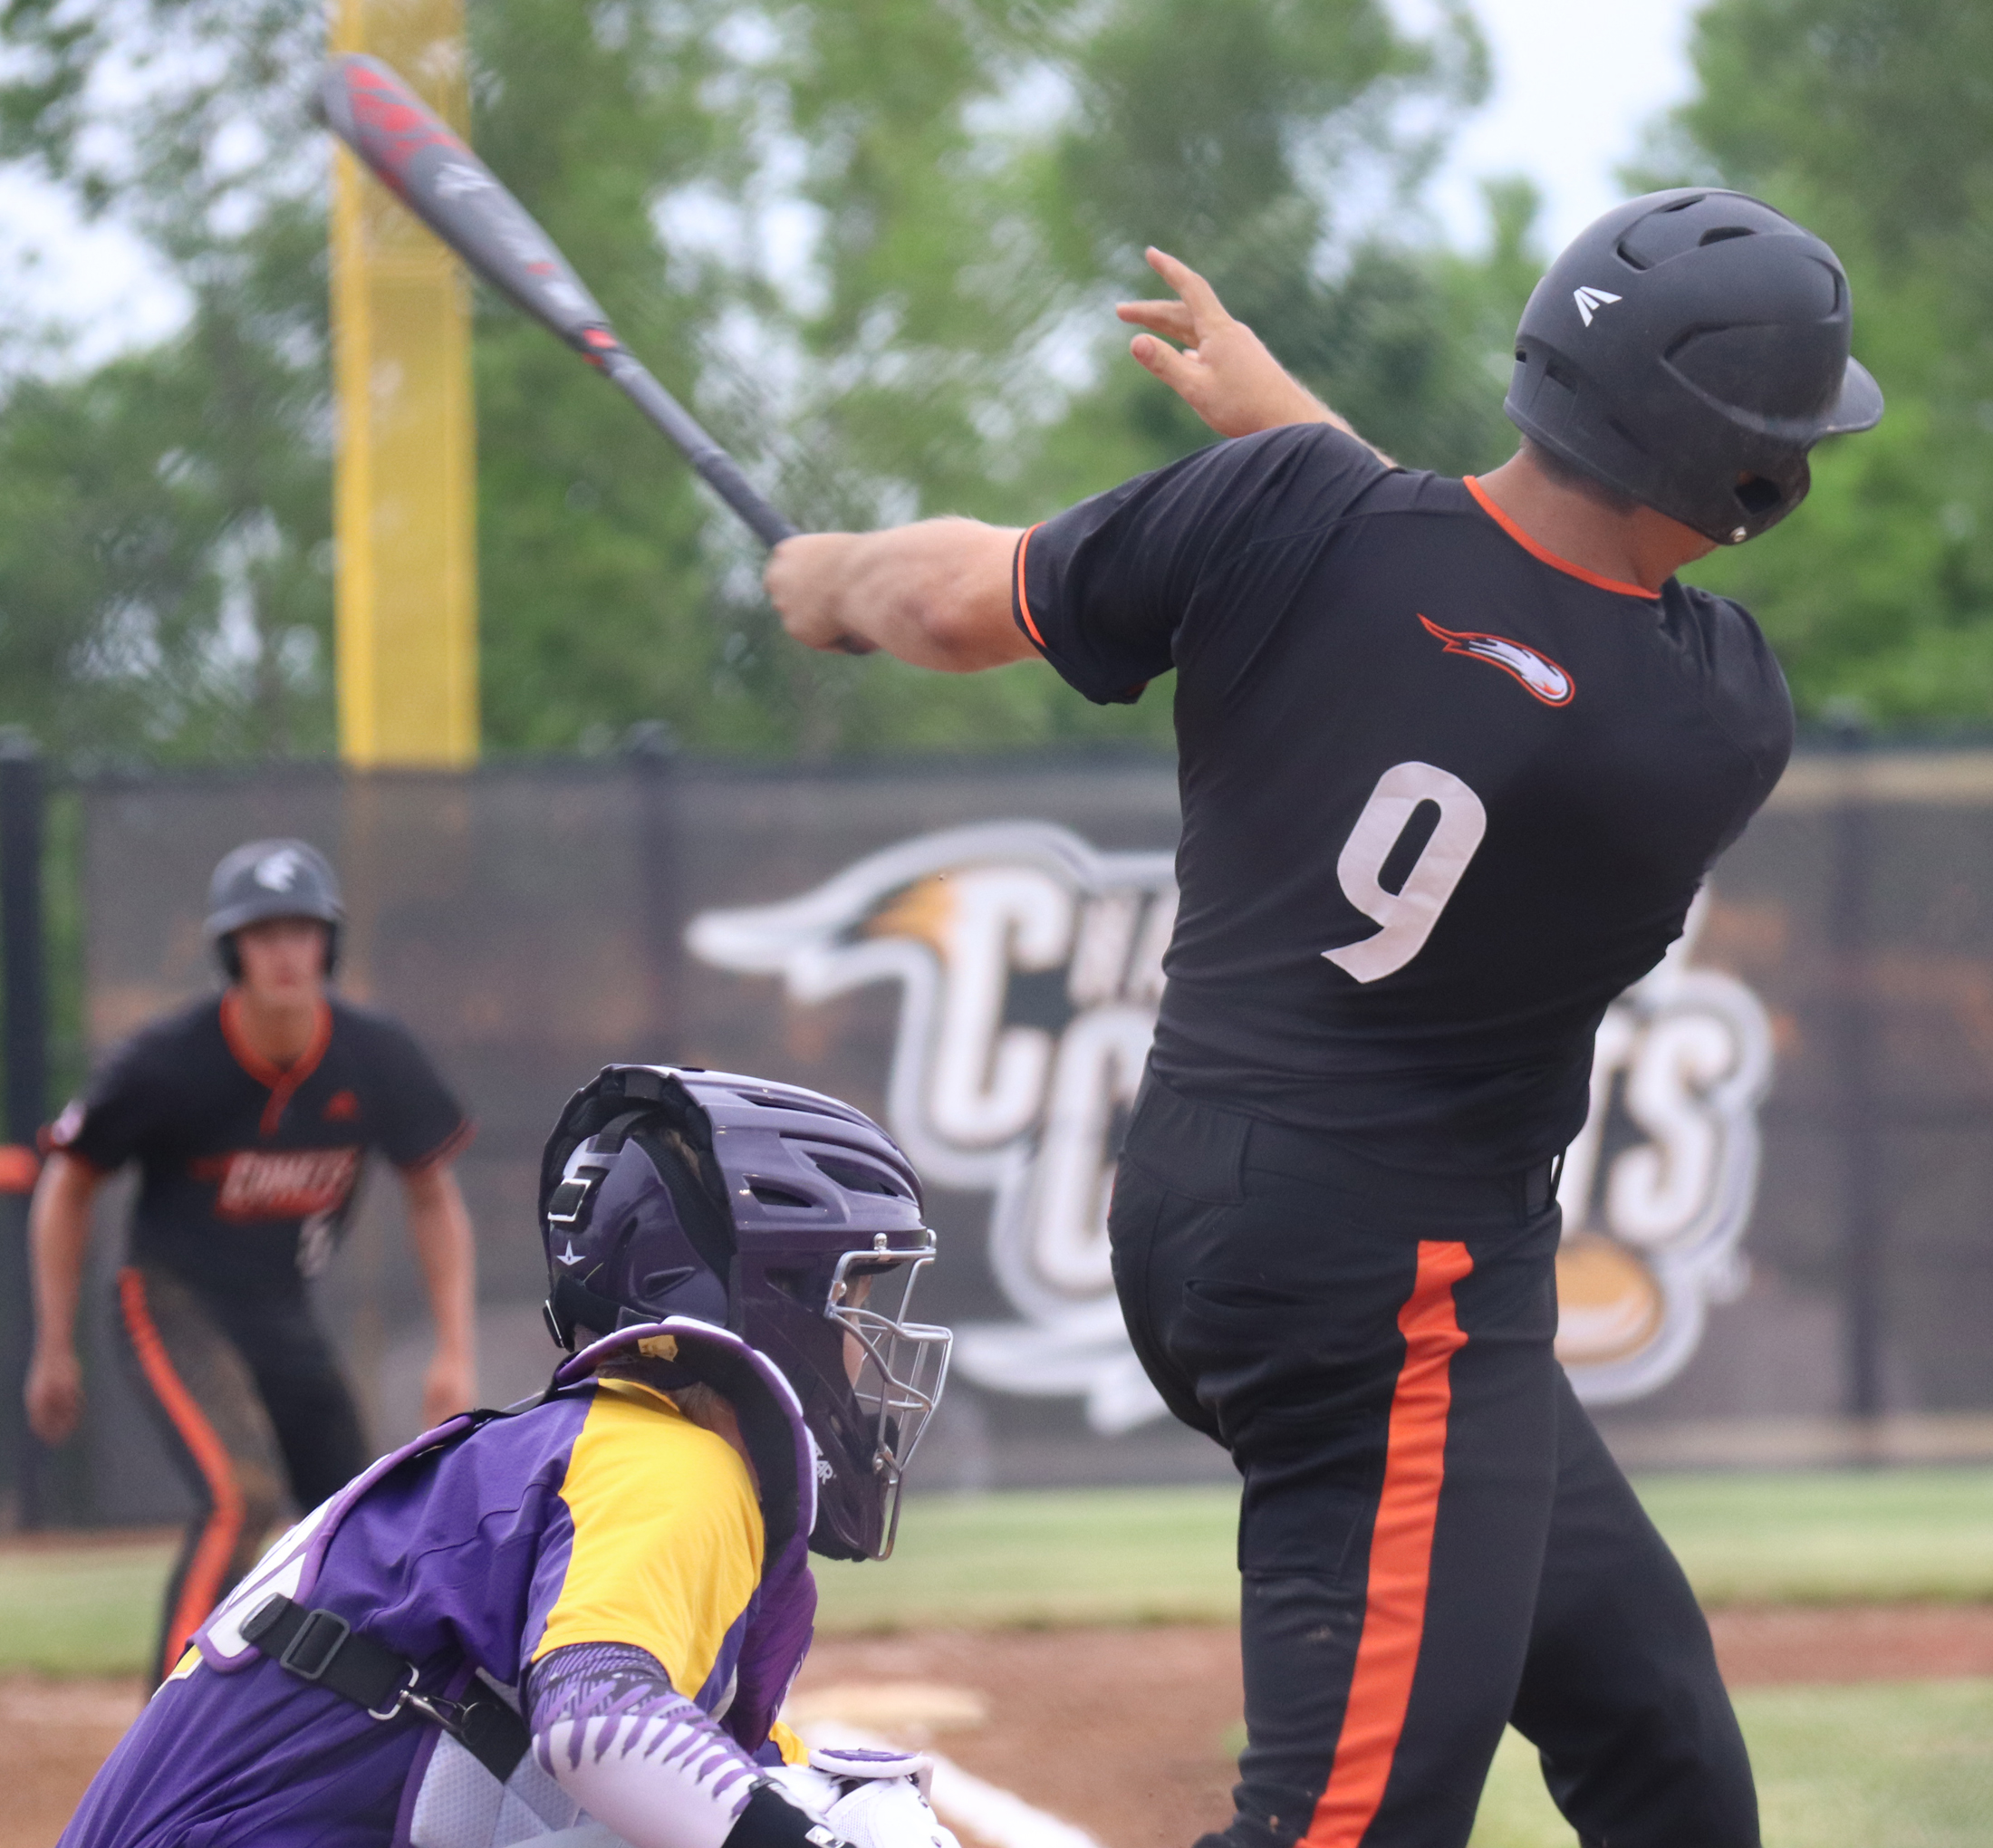 Comets play visitor-hosts in doubleheader sweep of Oelwein